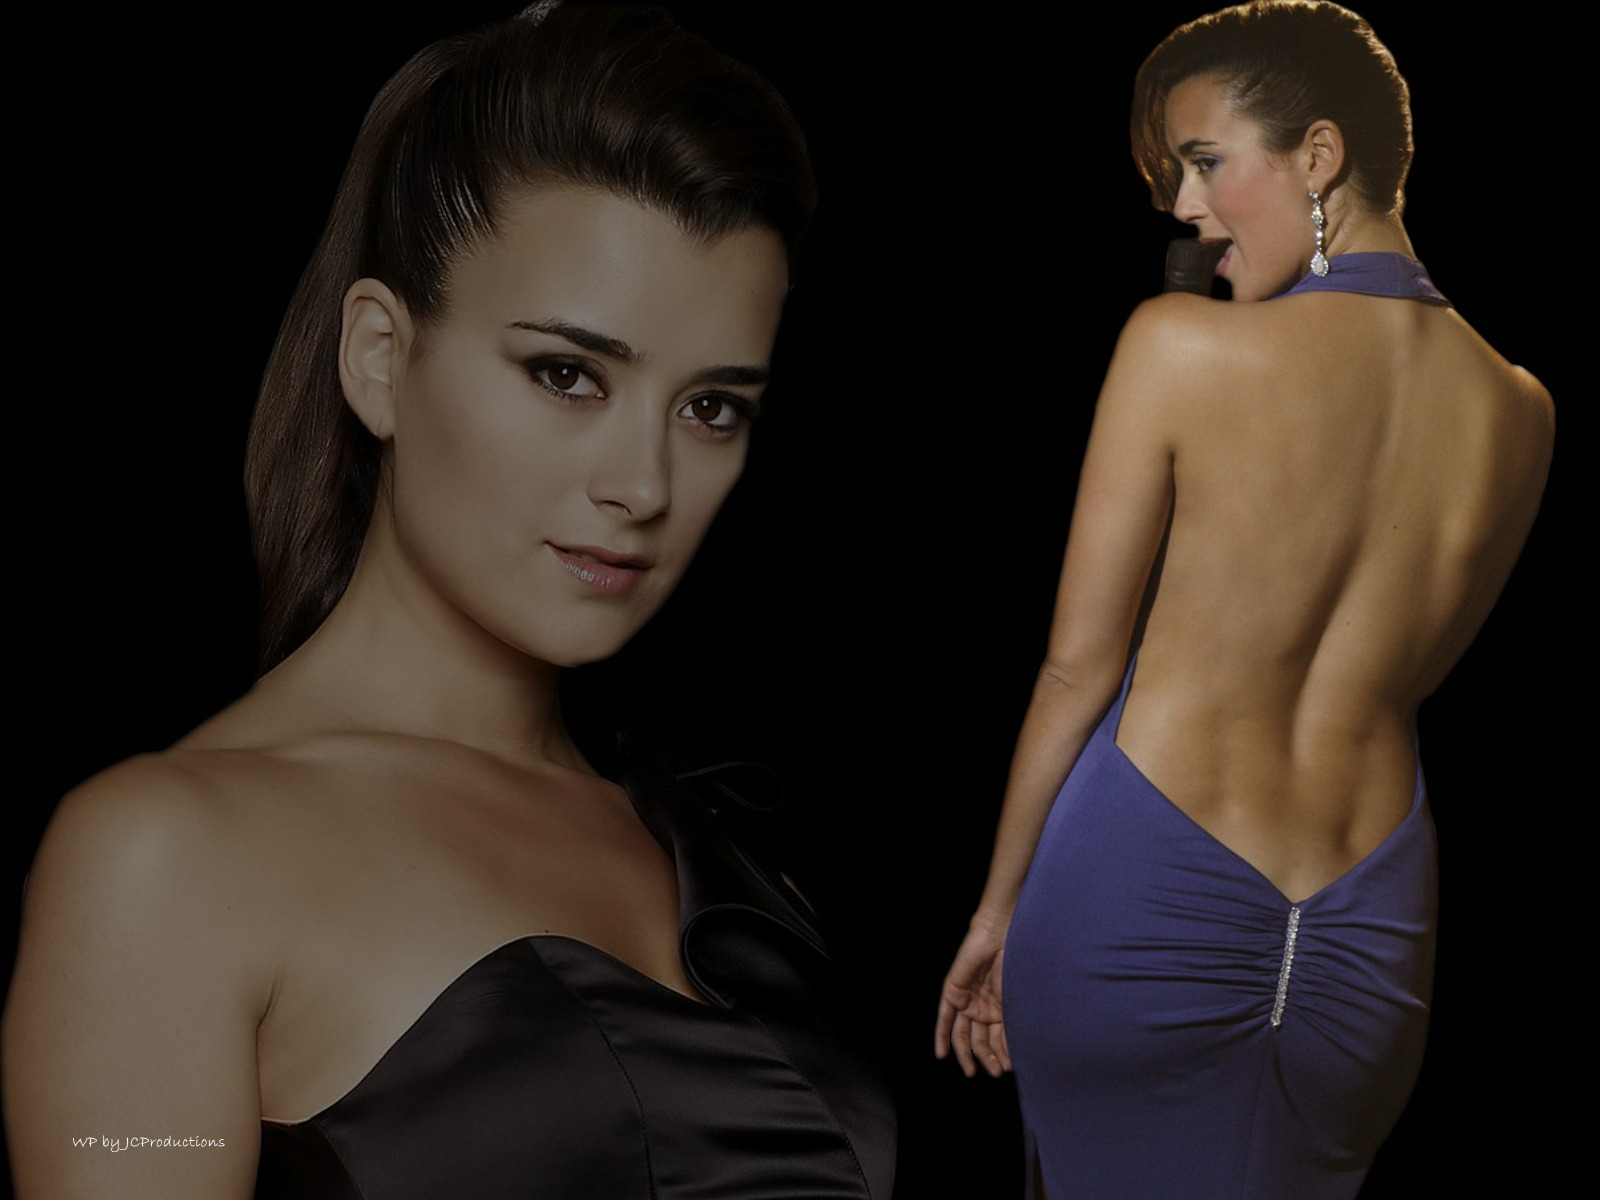 Download High quality NCIS, Ziva David, Blue Dress, Bare Back Cote de